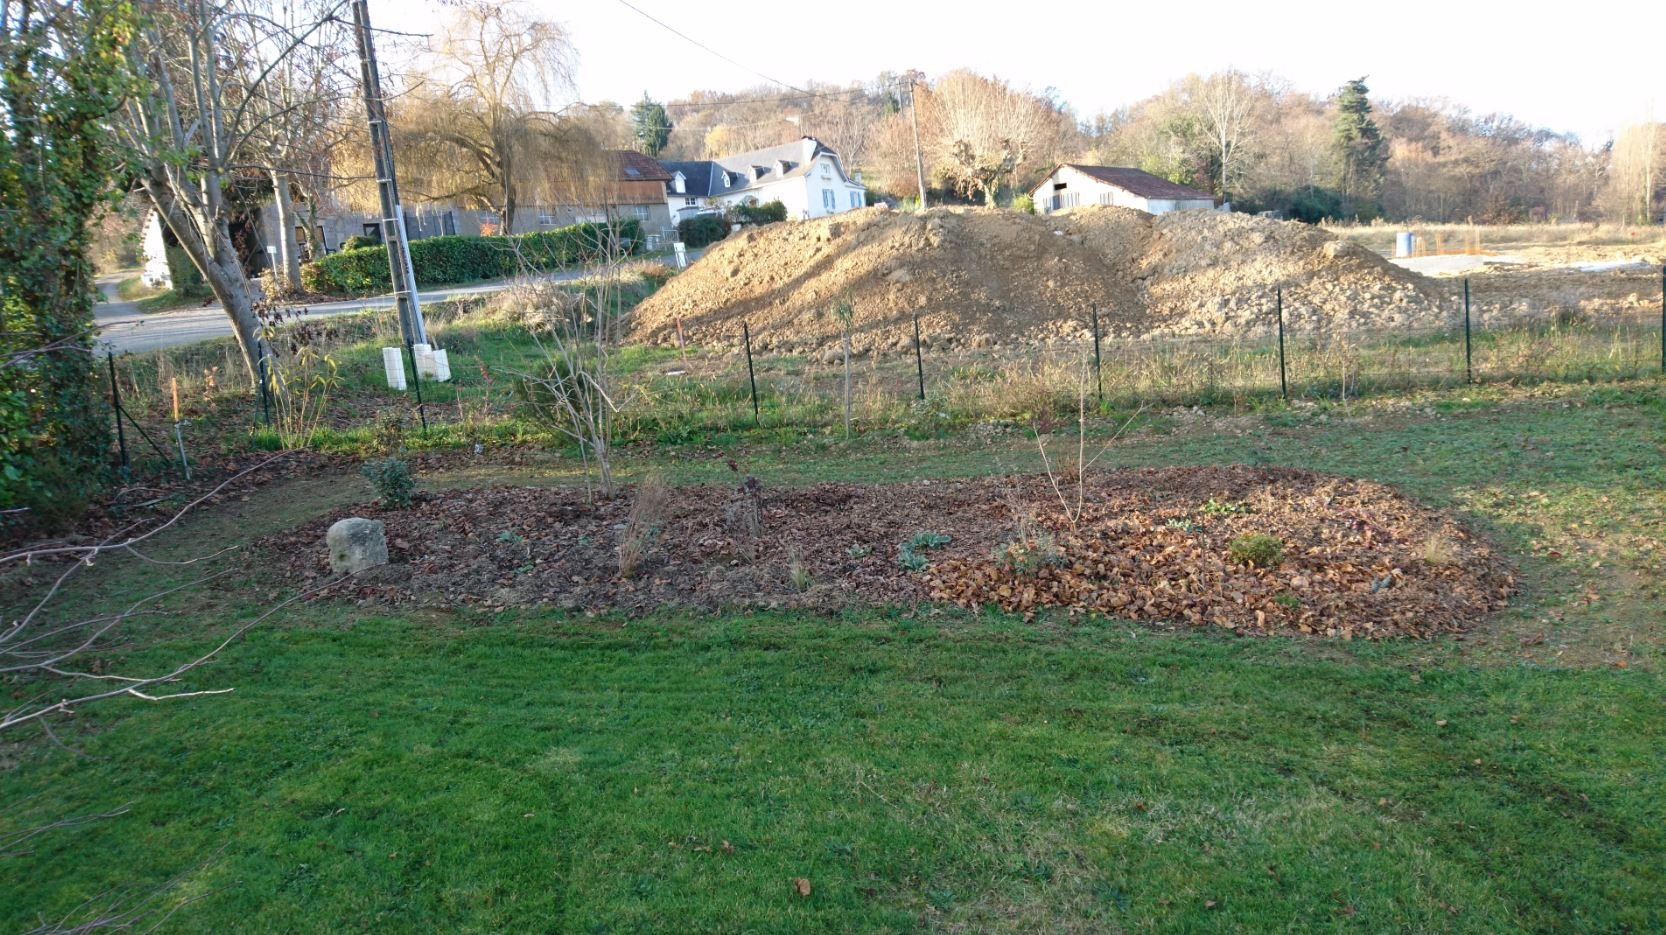 Am nagement d un massif jardin de luchane for Creation massif jardin